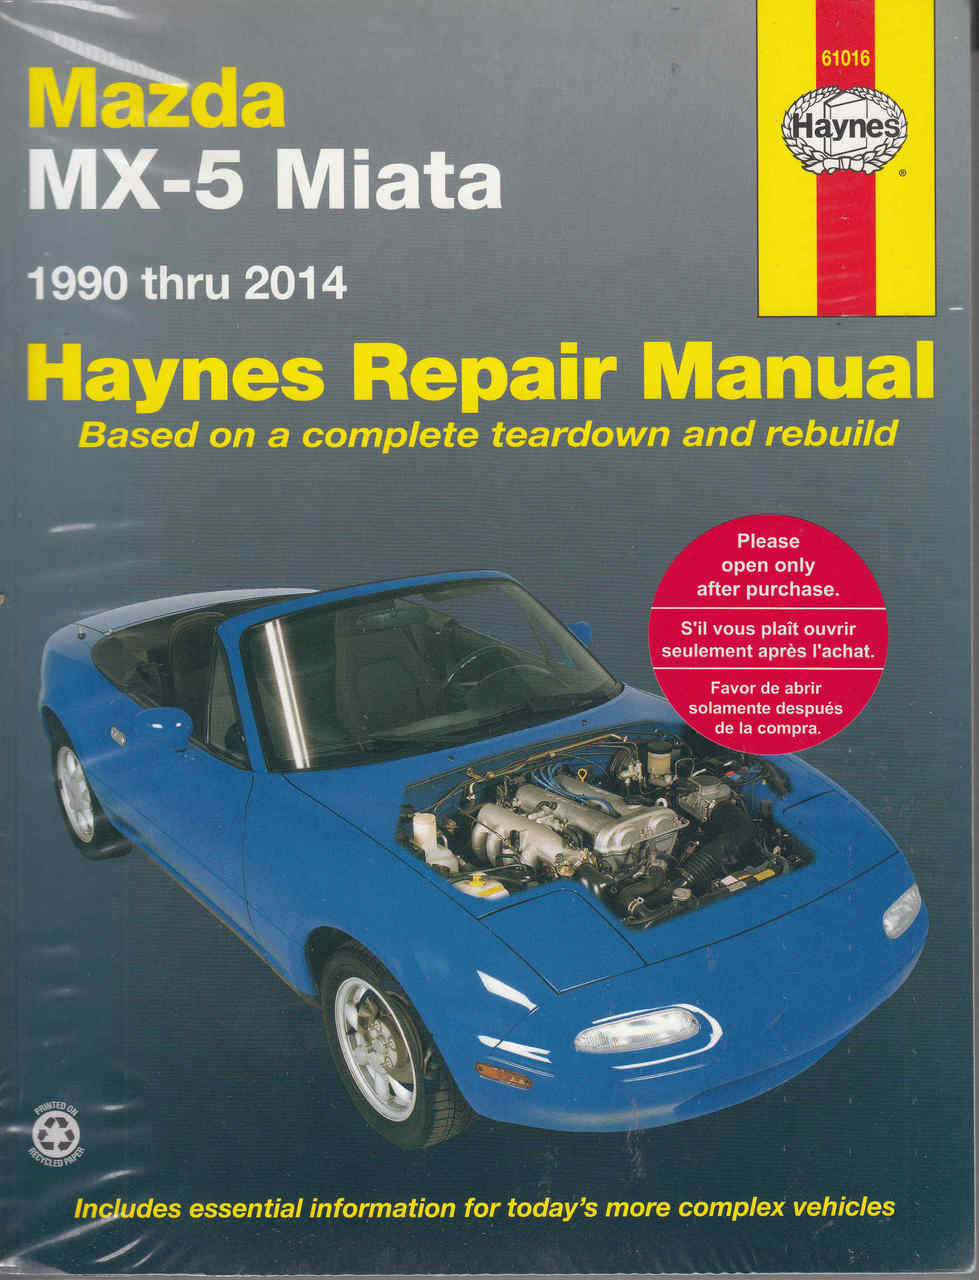 Mazda MX-5 Miata 1990 - 2009 Workshop Manual ...